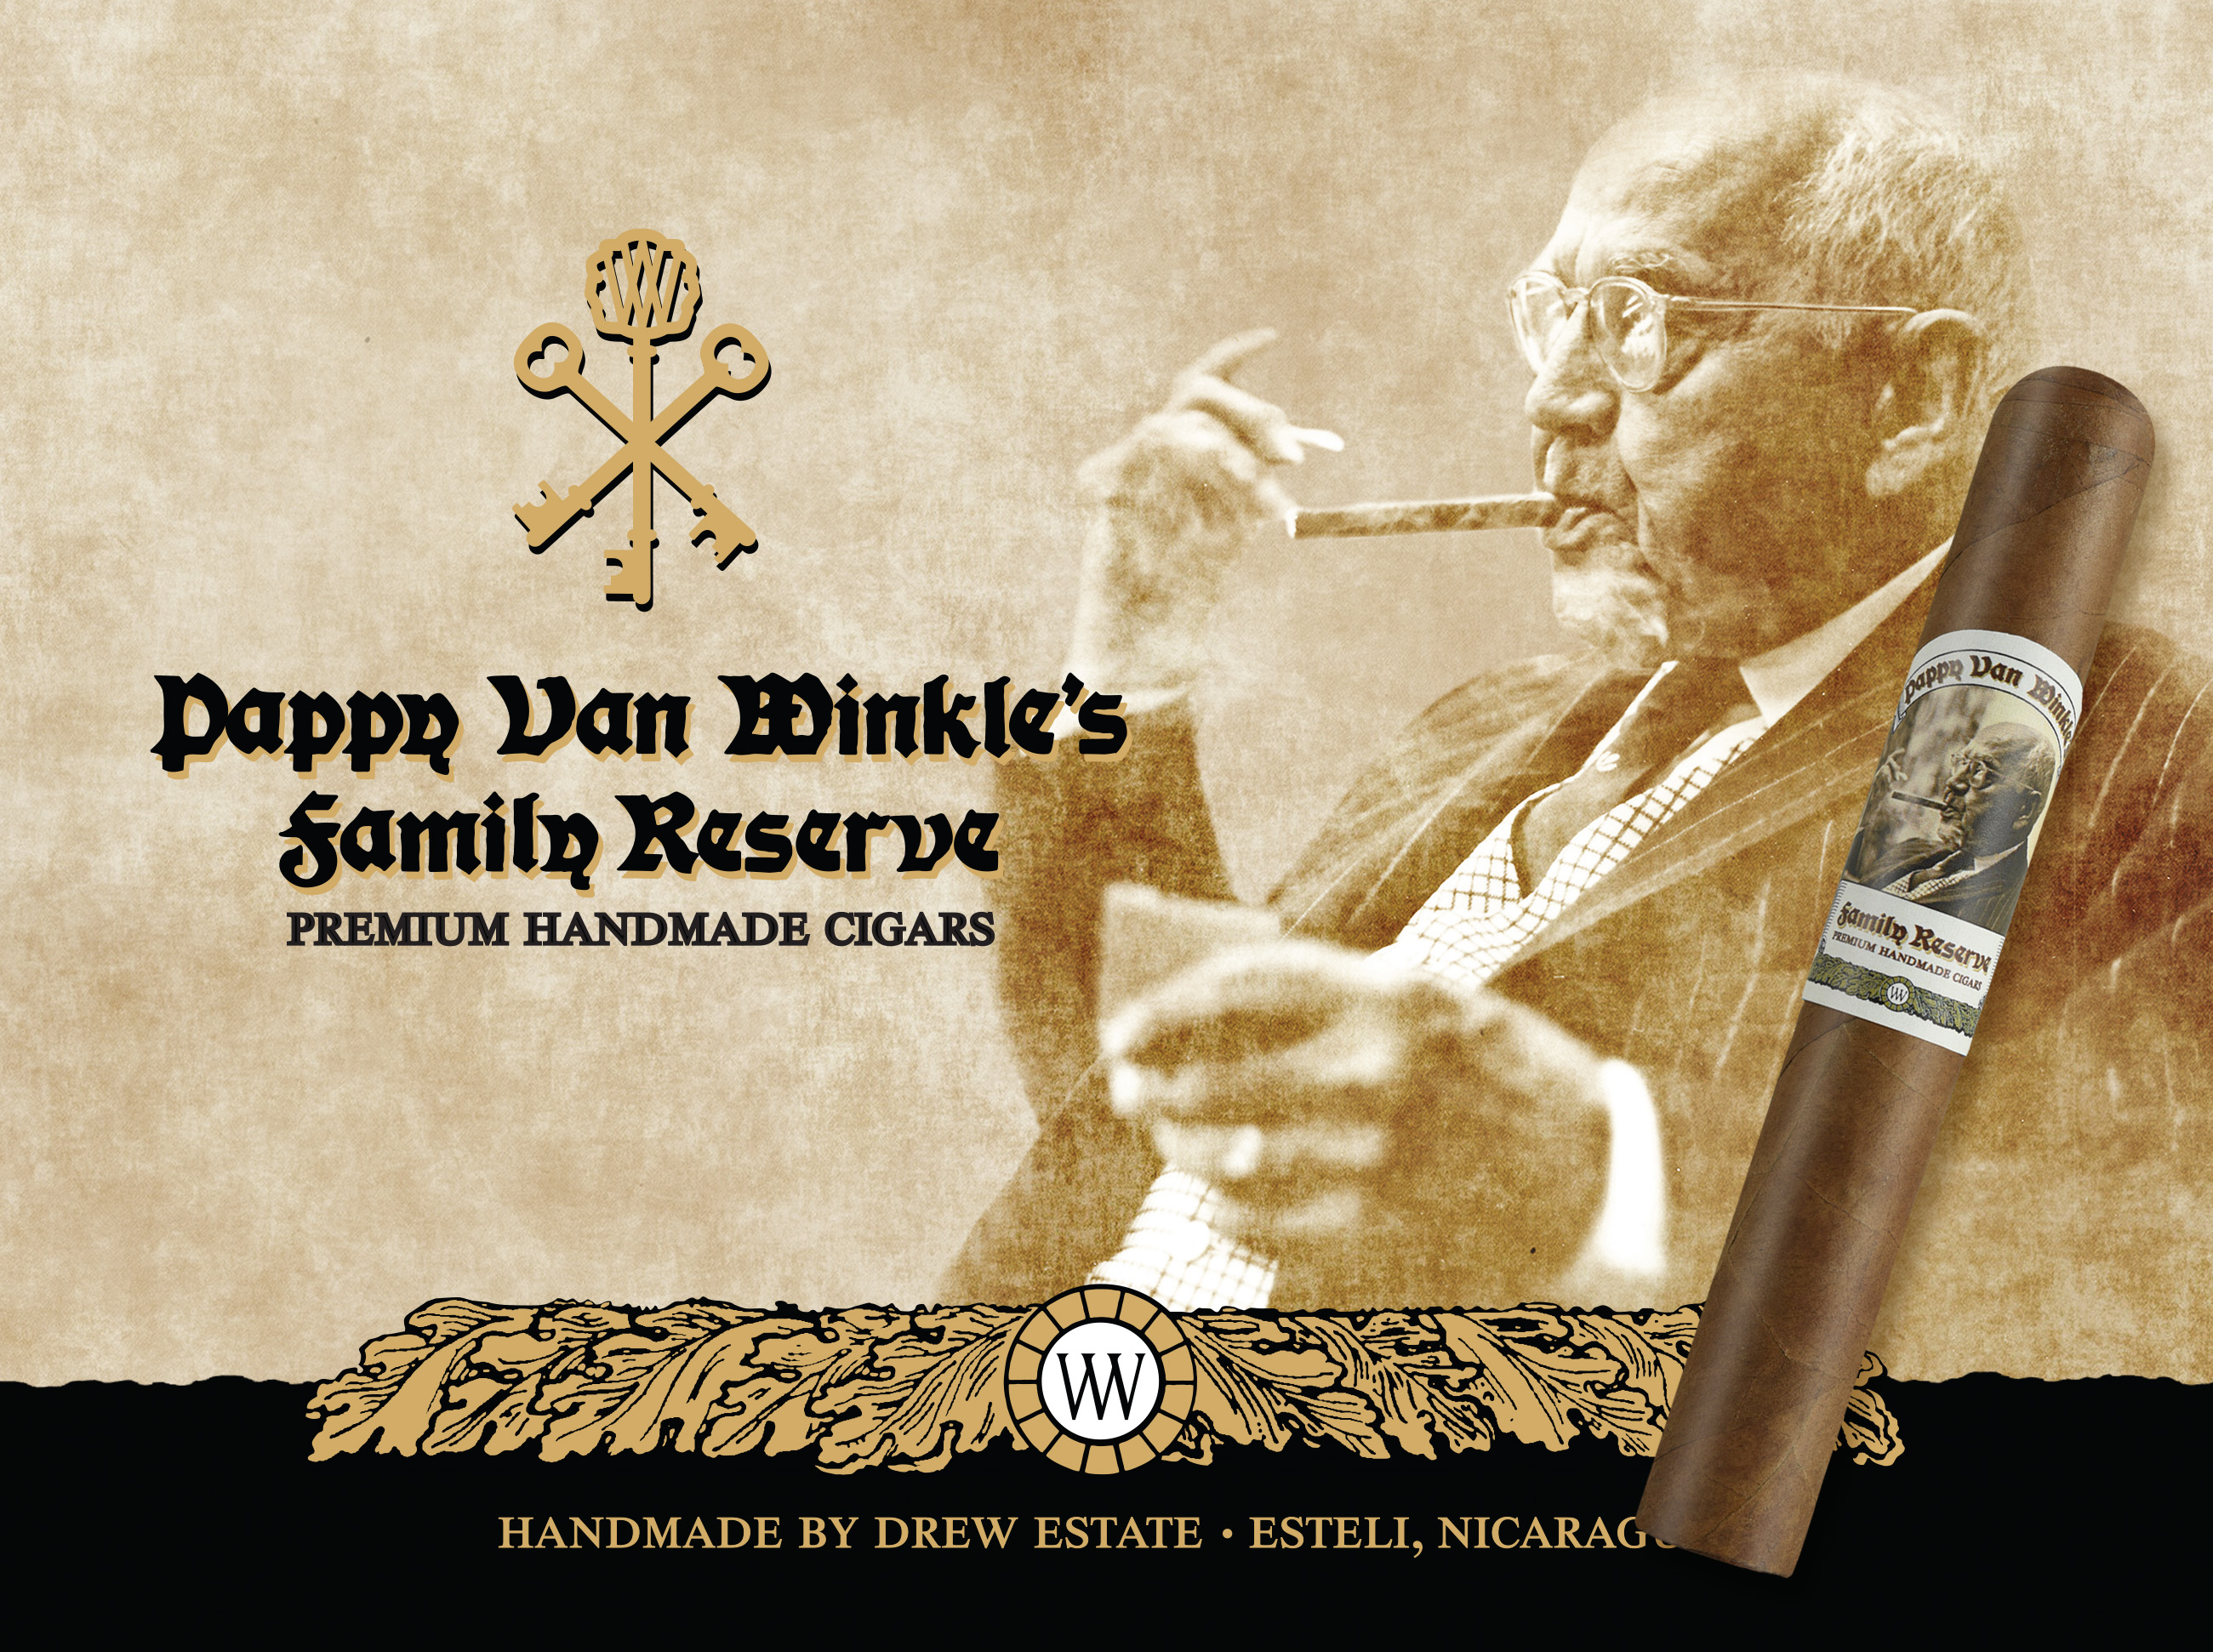 Announcement Pappy Van Winkle Family Reserve Drew Estate cigars